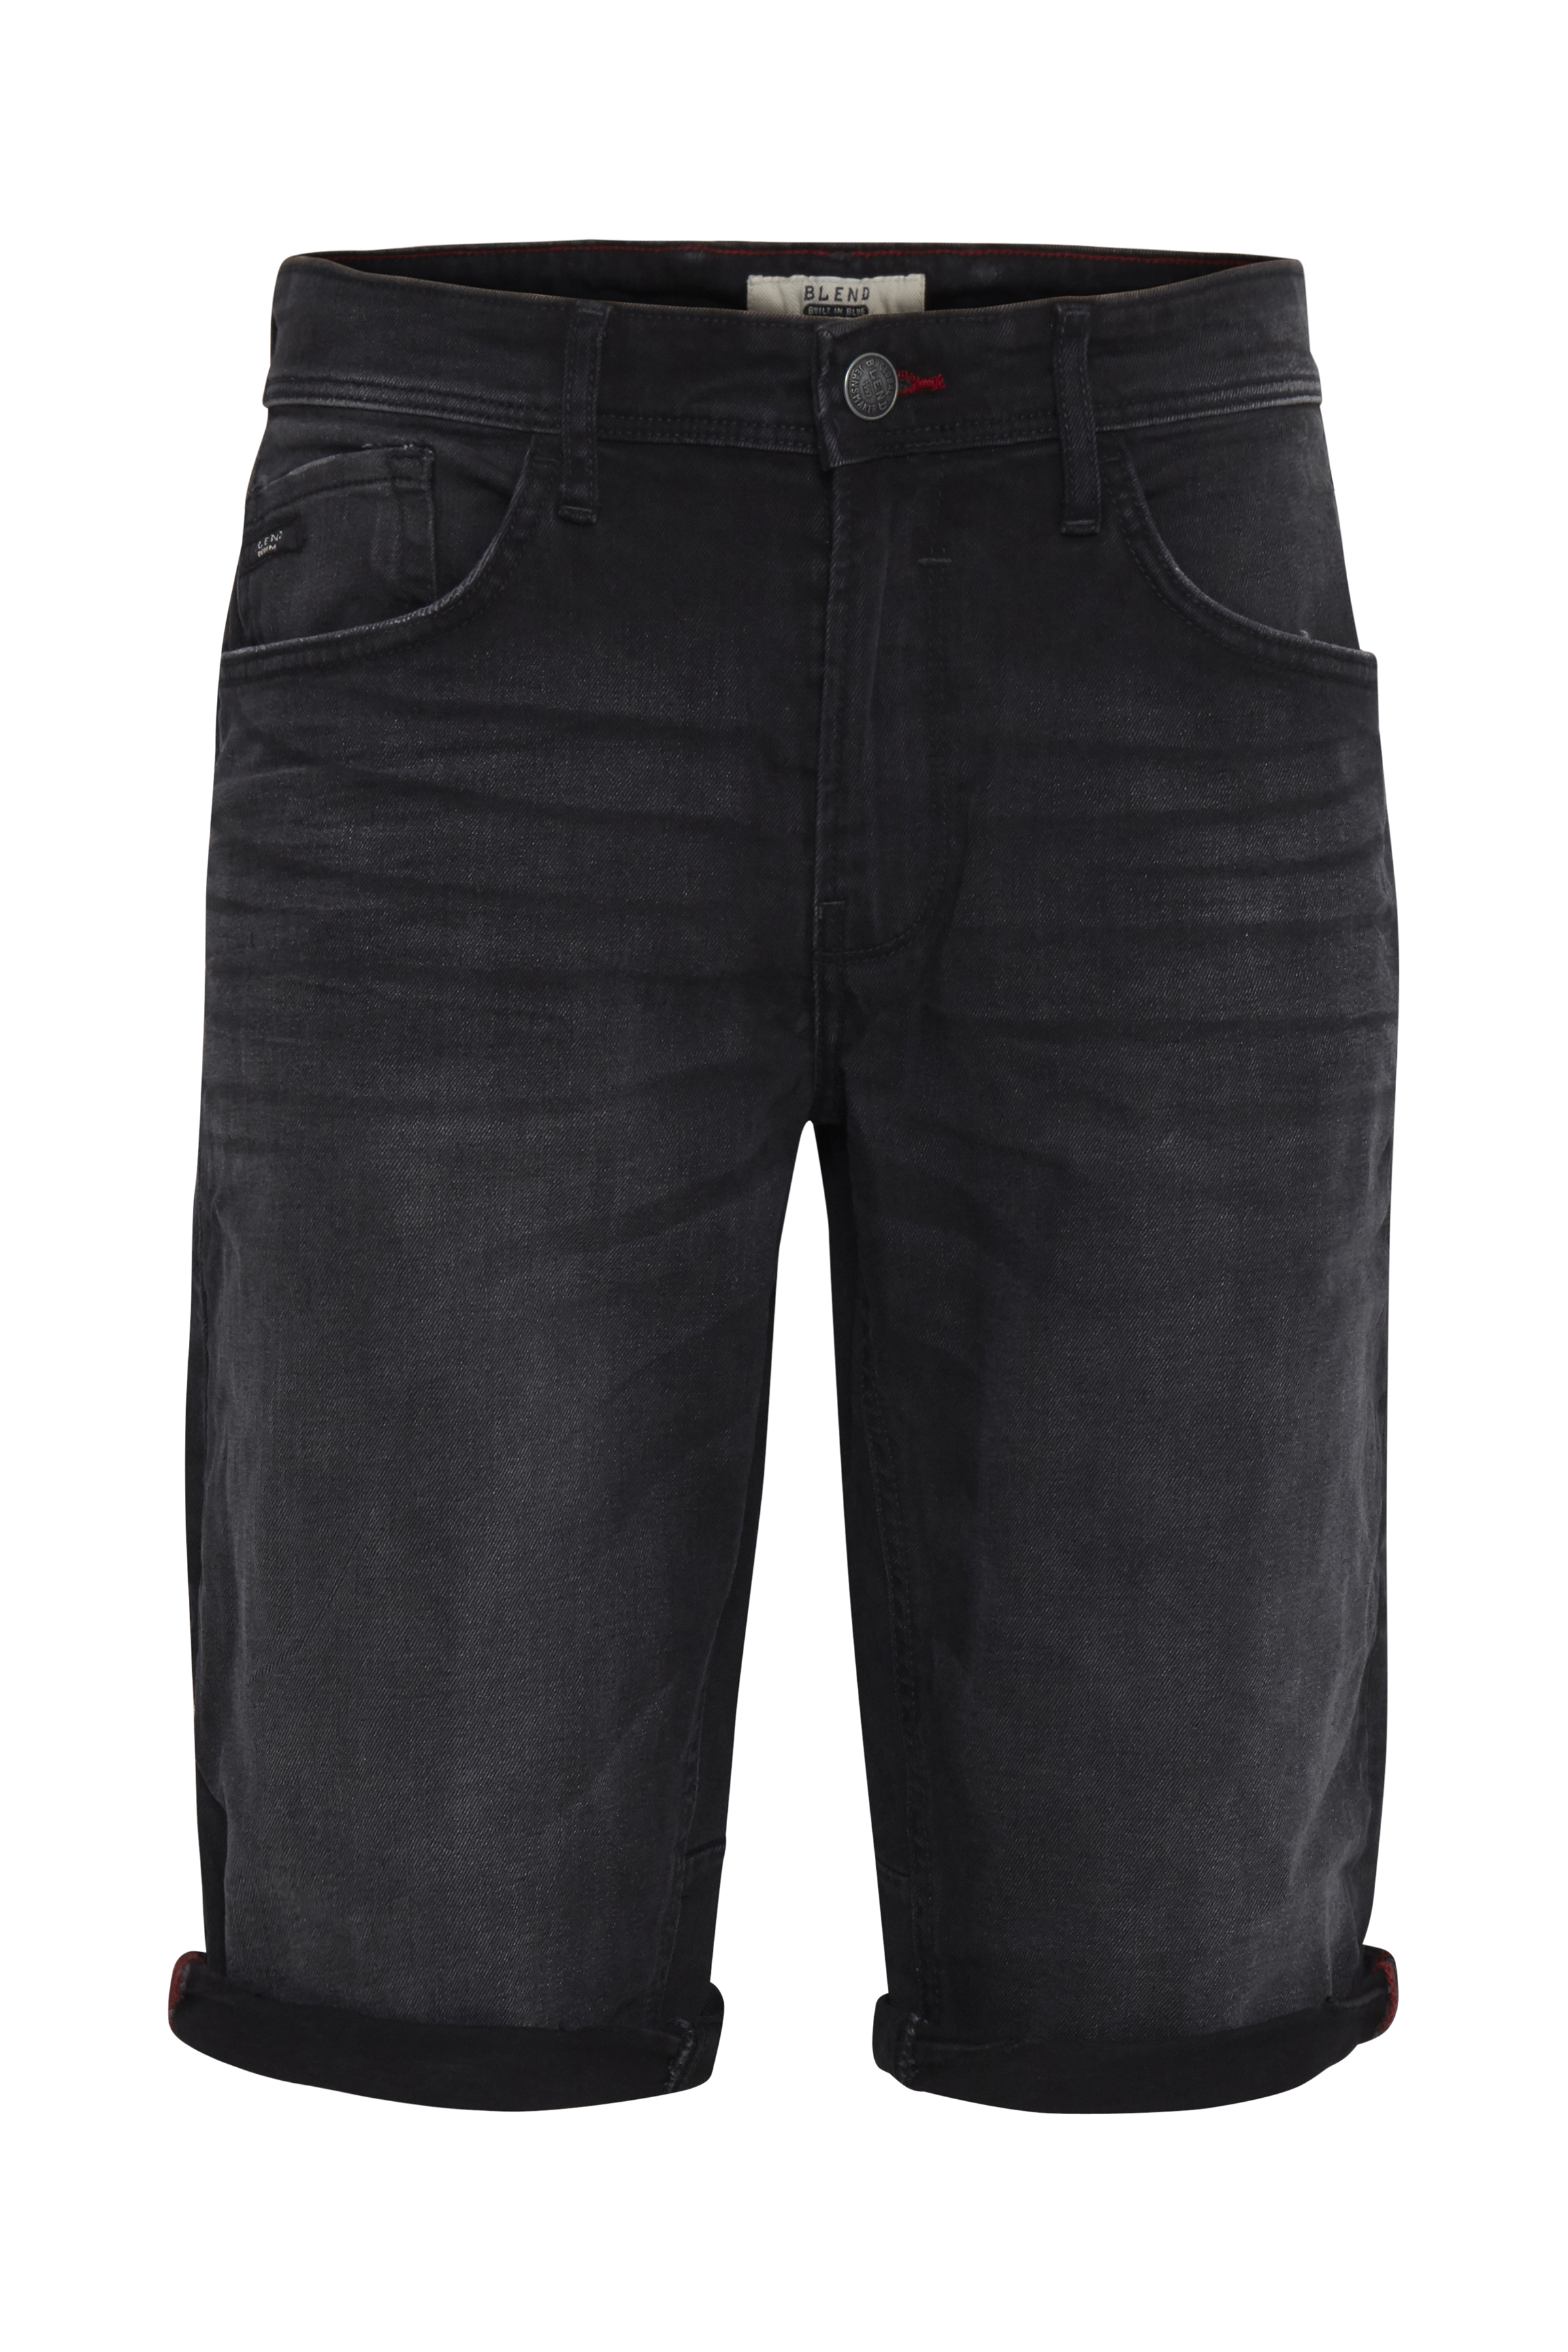 Denim Black